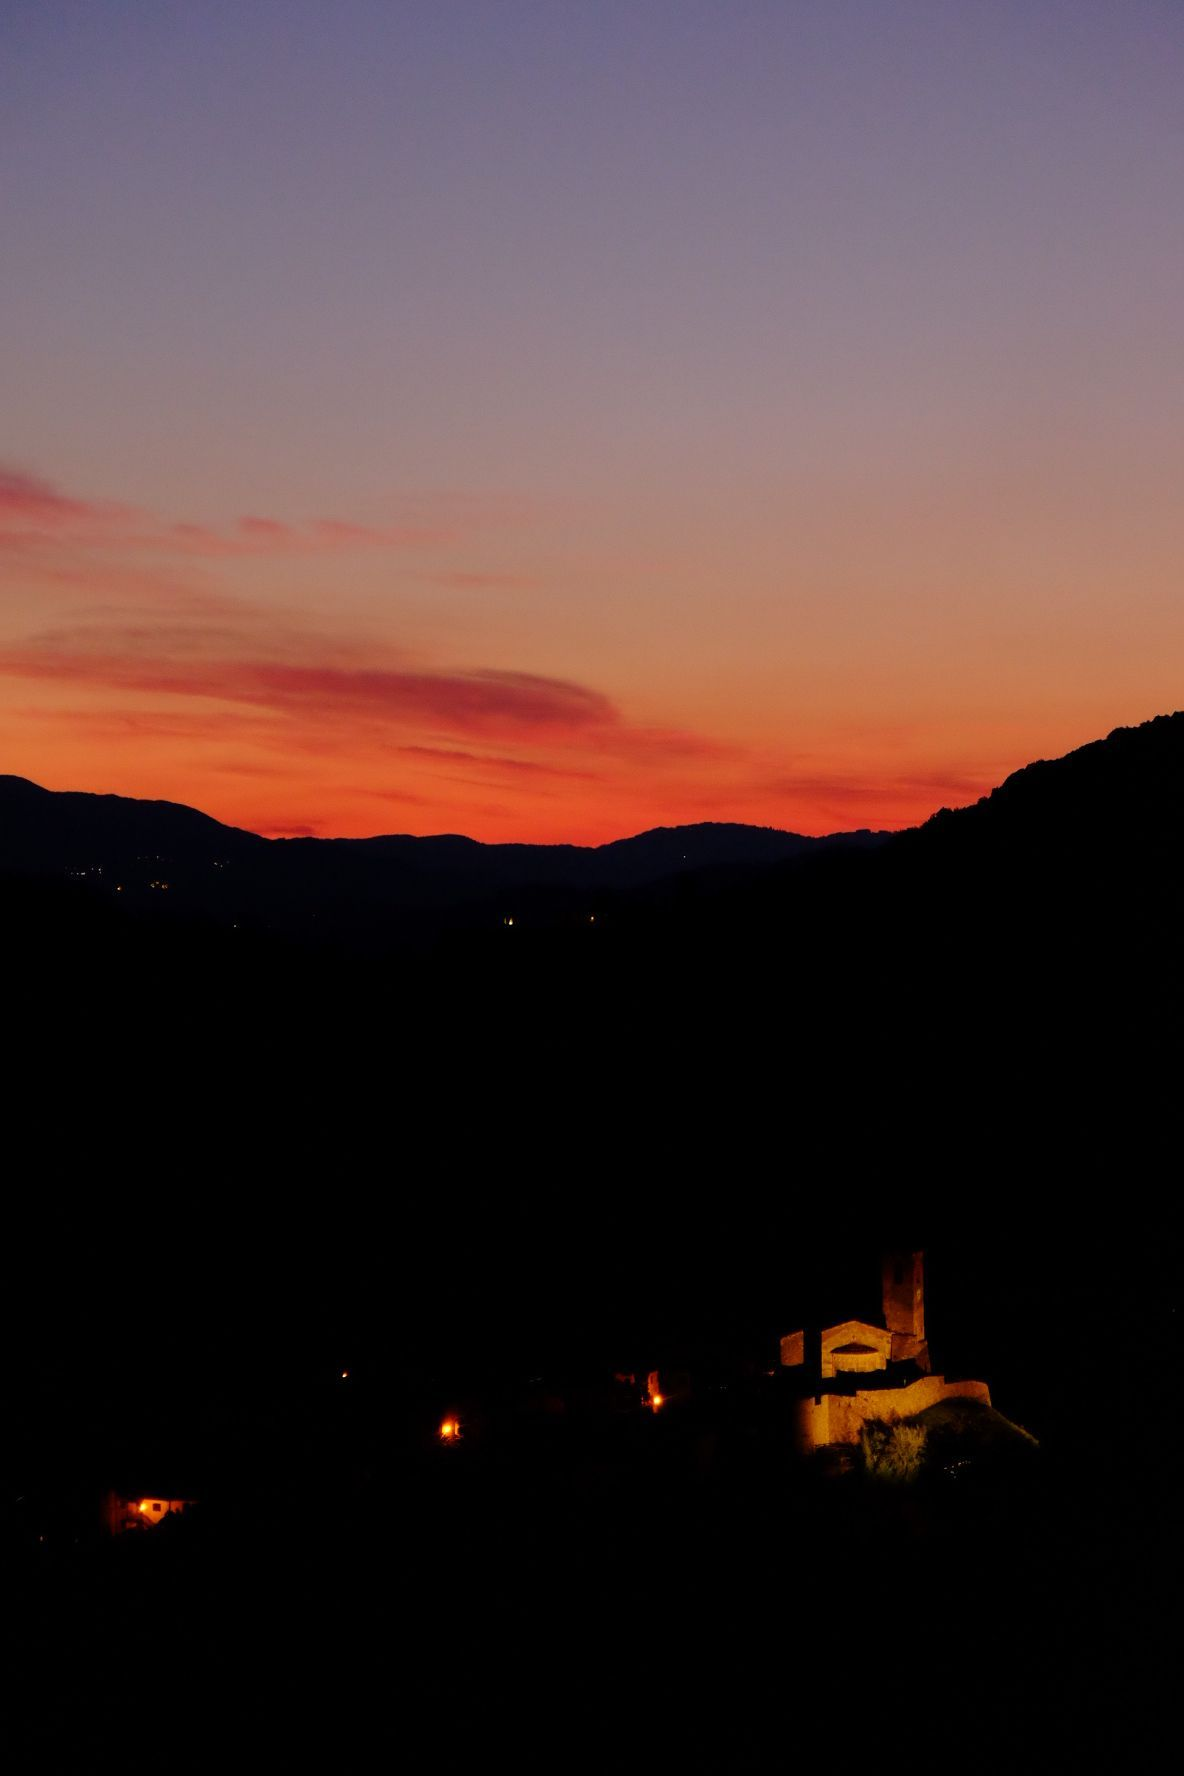 after sunset in Northern Tuscany captured by photographer Elizabeth Armitage